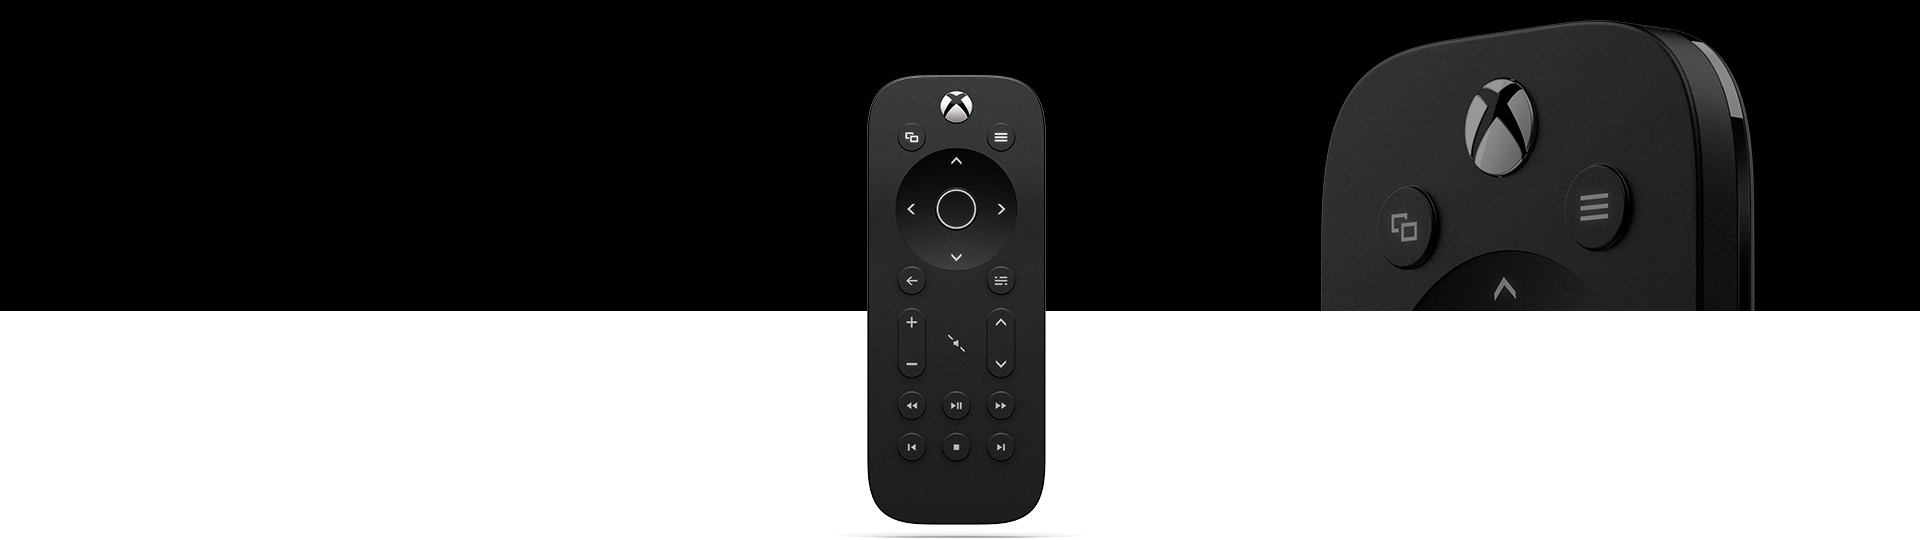 Telecomando multimediale per Xbox One